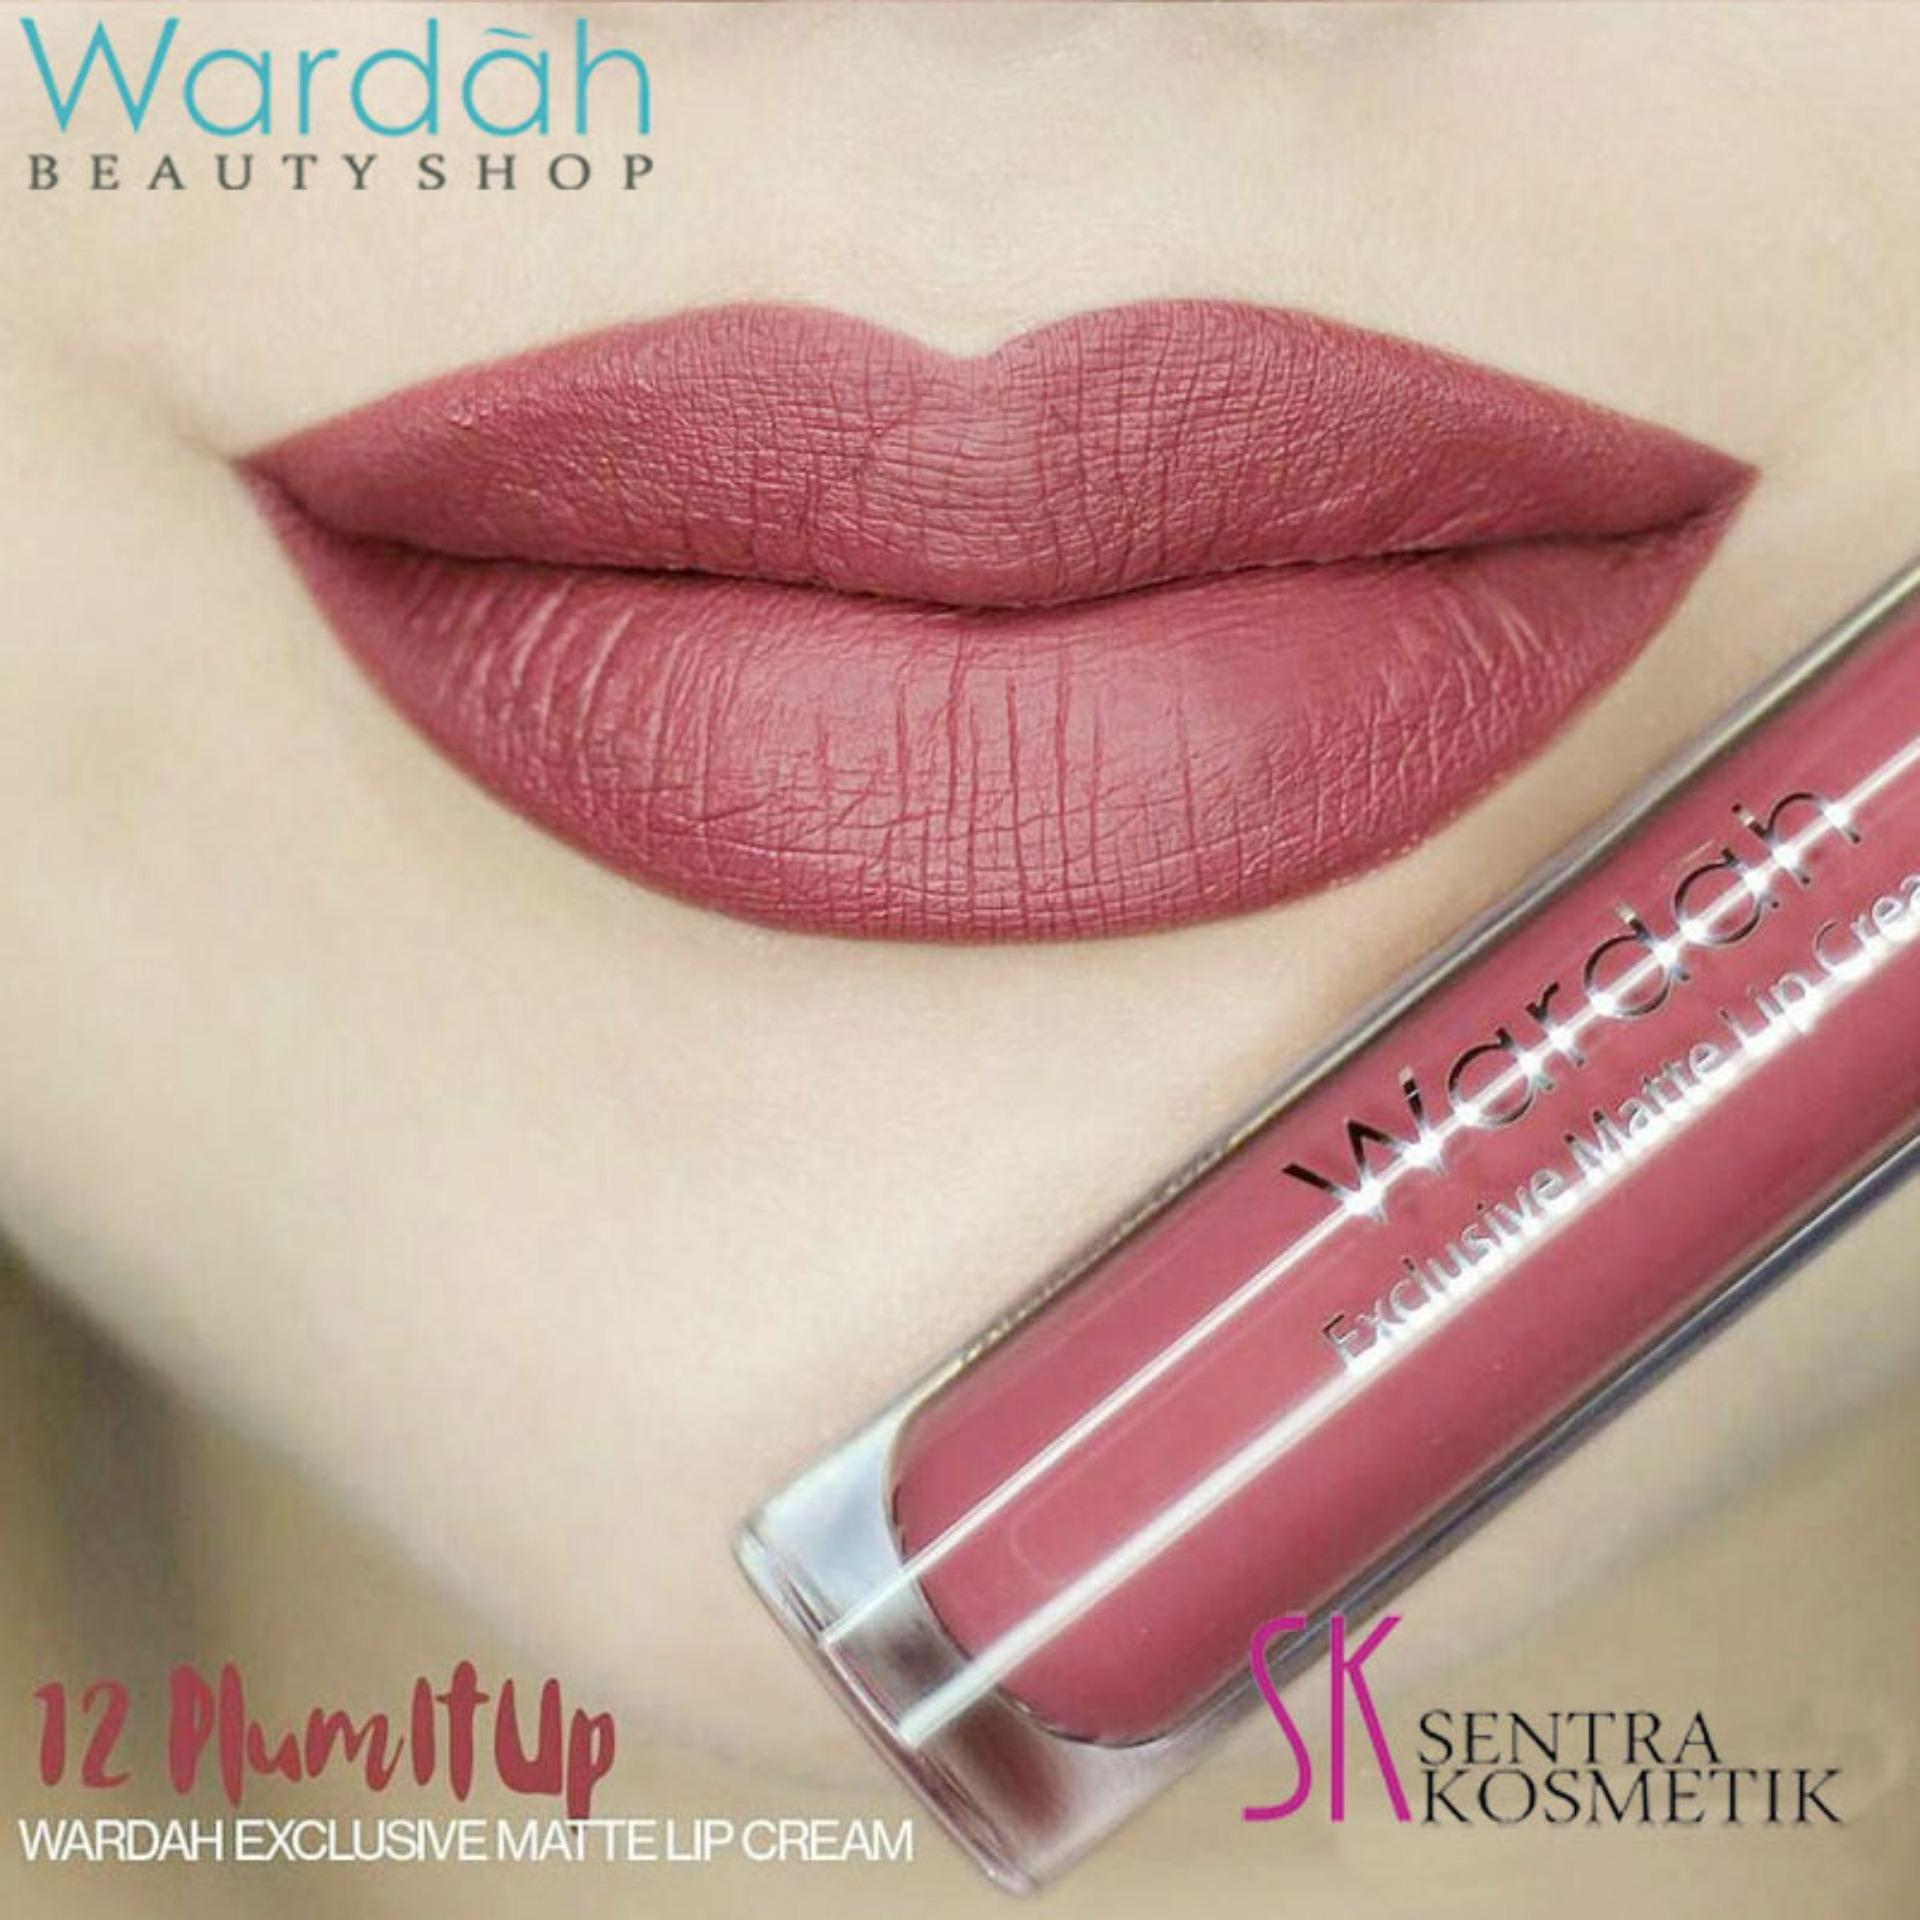 Wardah Exclusive MATTE LIP CREAM No 12 - PLUM IT UP